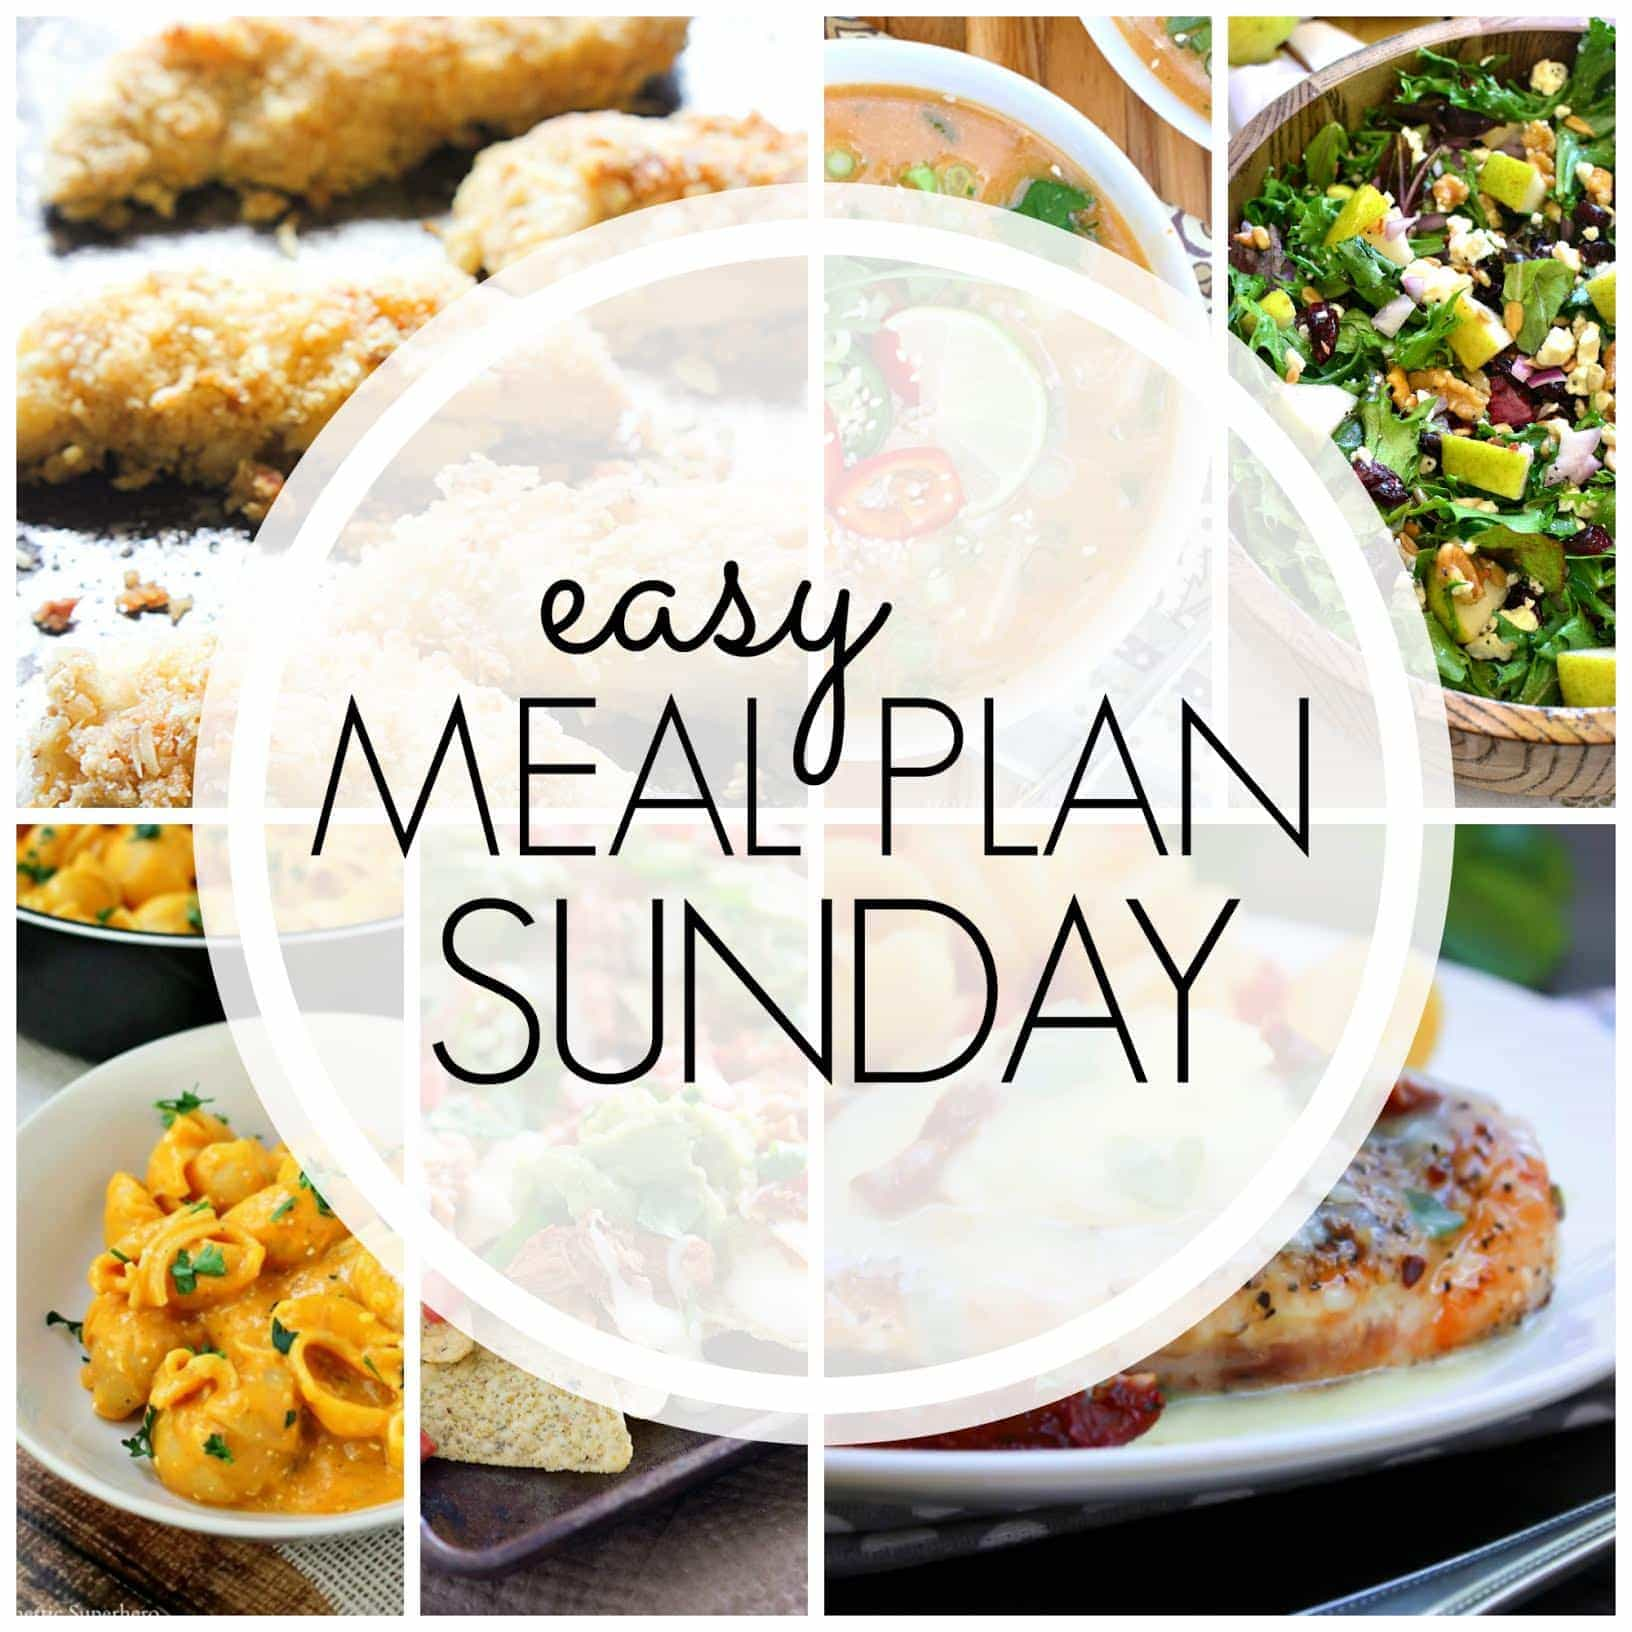 The BEST Weekly Meal Plan - 6 dinners, 1 breakfast, and 2 desserts - all in one place and ready to make your week easier!